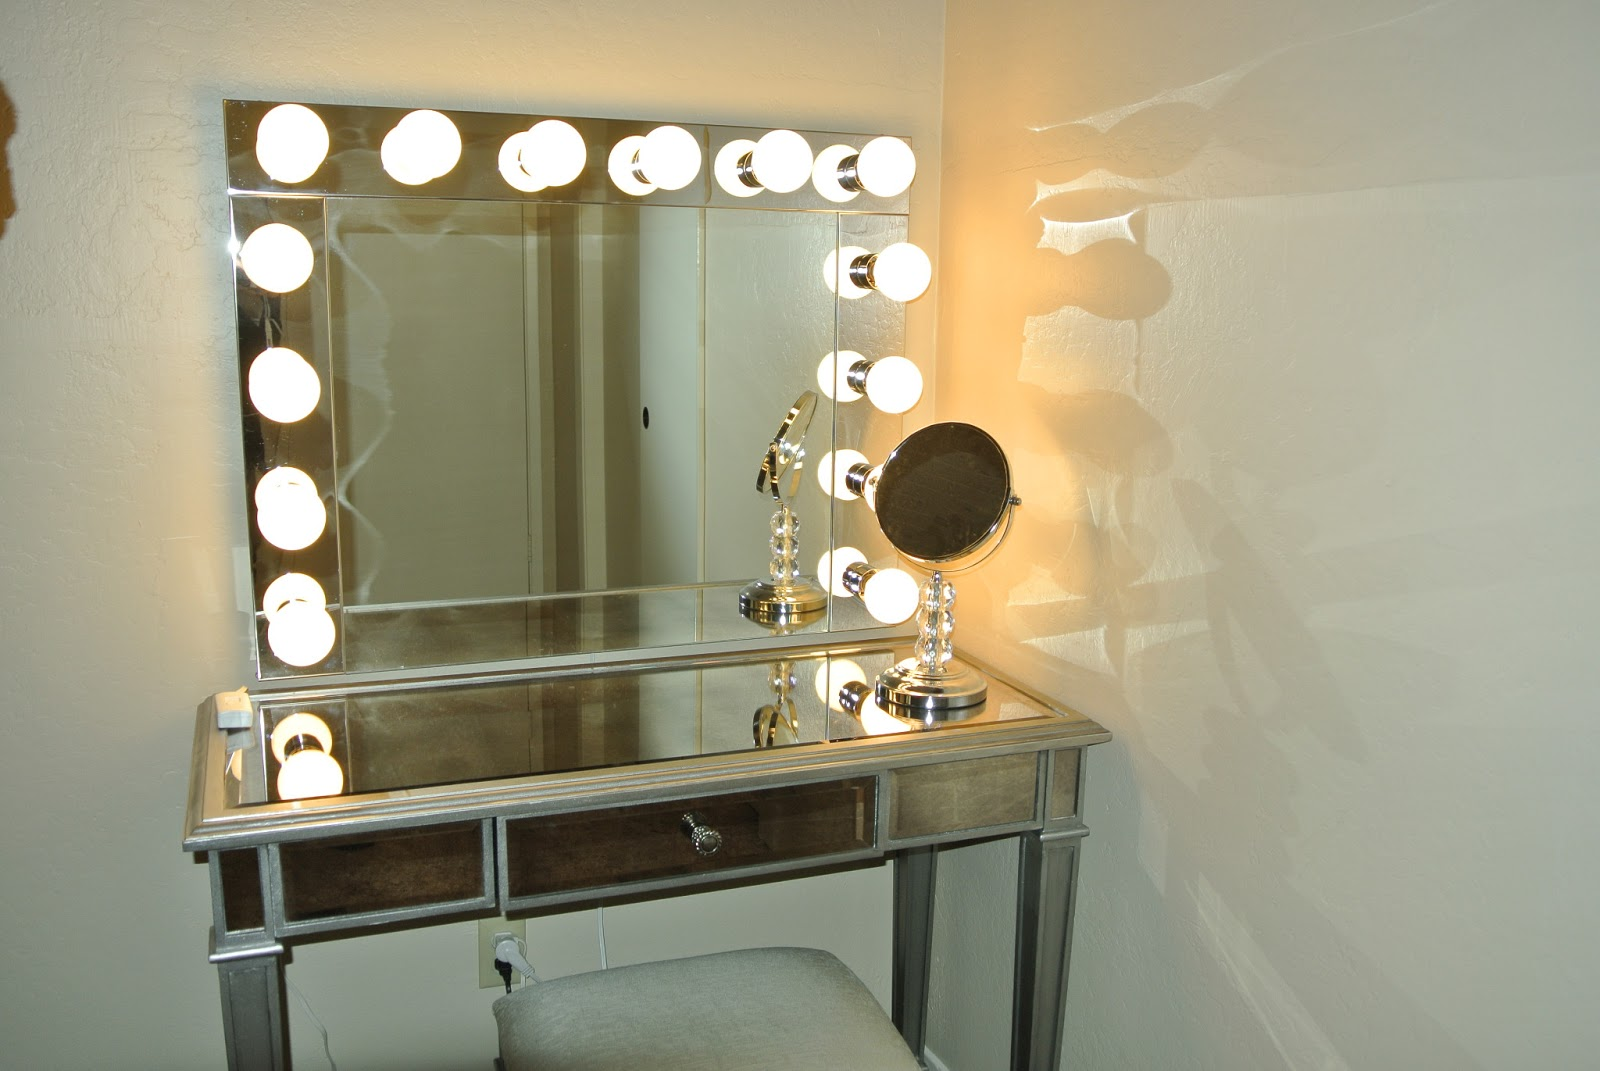 gallery-of-bedroom-mirror-with-lights-ikea-in-vanity-mirror-with-lights-for-bedroom